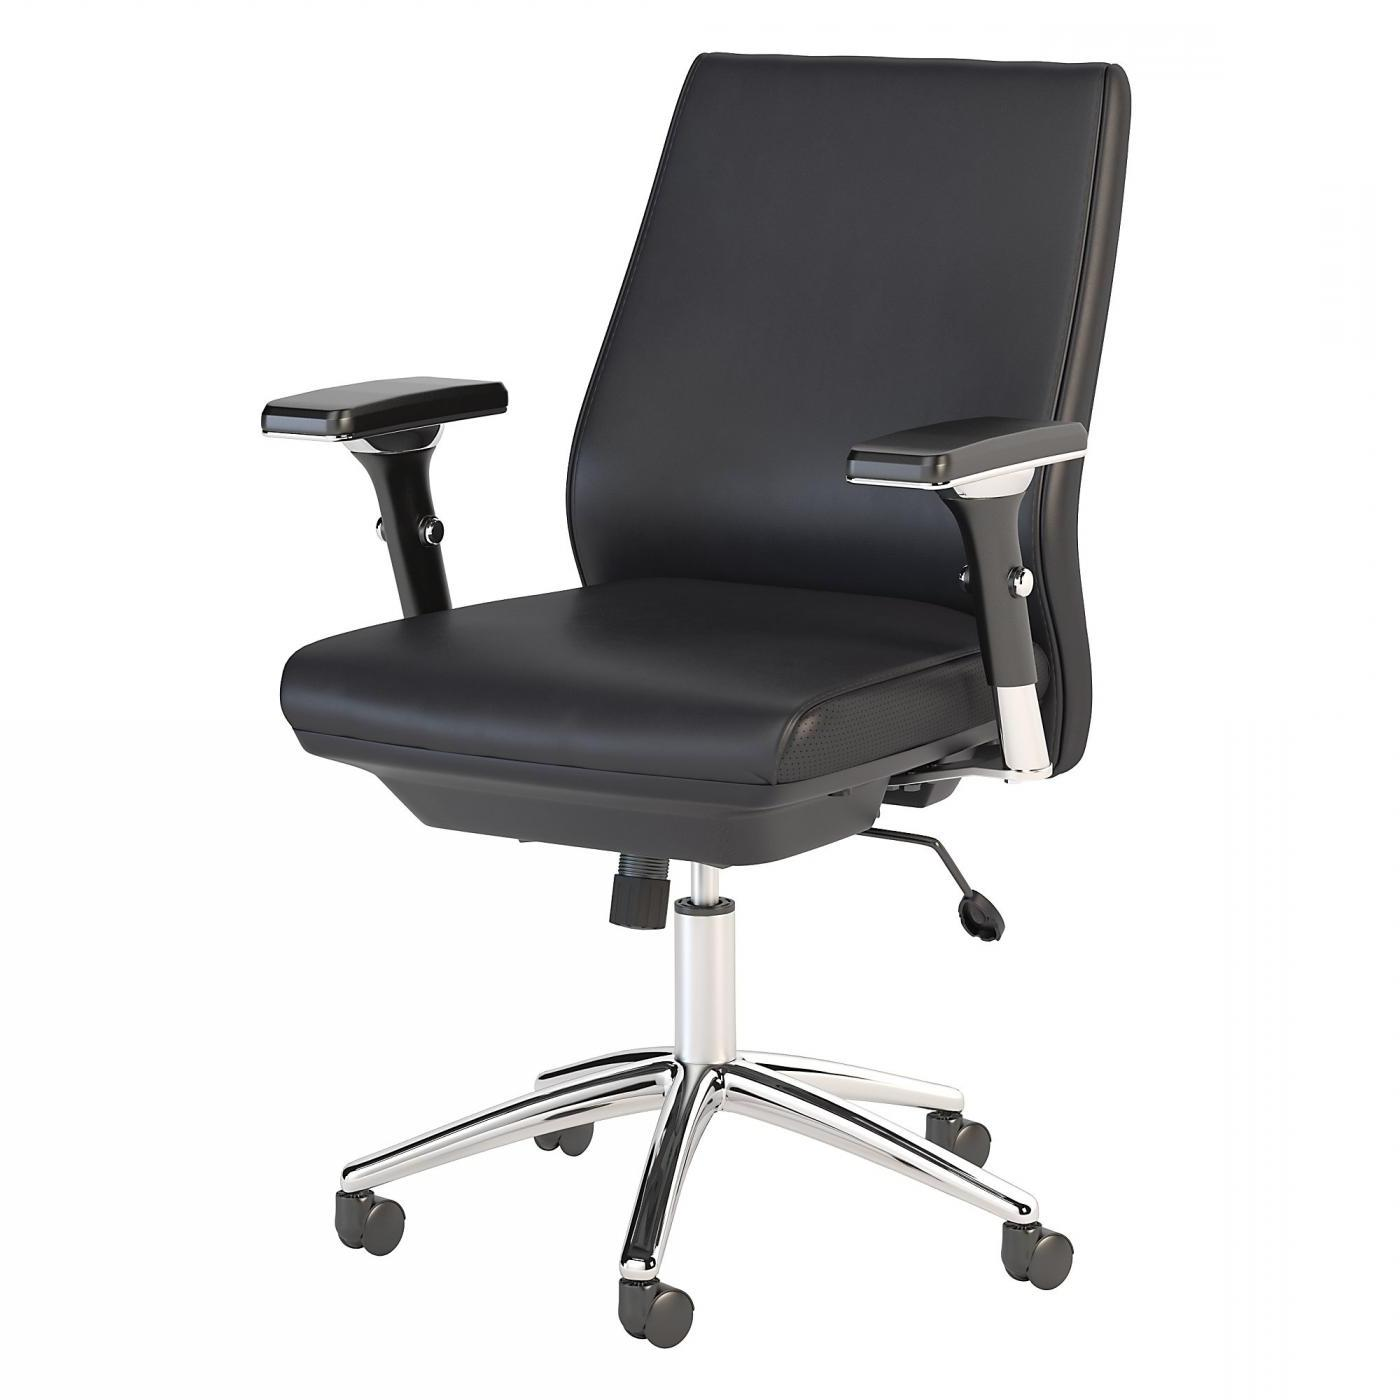 BUSH BUSINESS FURNITURE METROPOLIS MID BACK LEATHER EXECUTIVE OFFICE CHAIR. FREE SHIPPING.